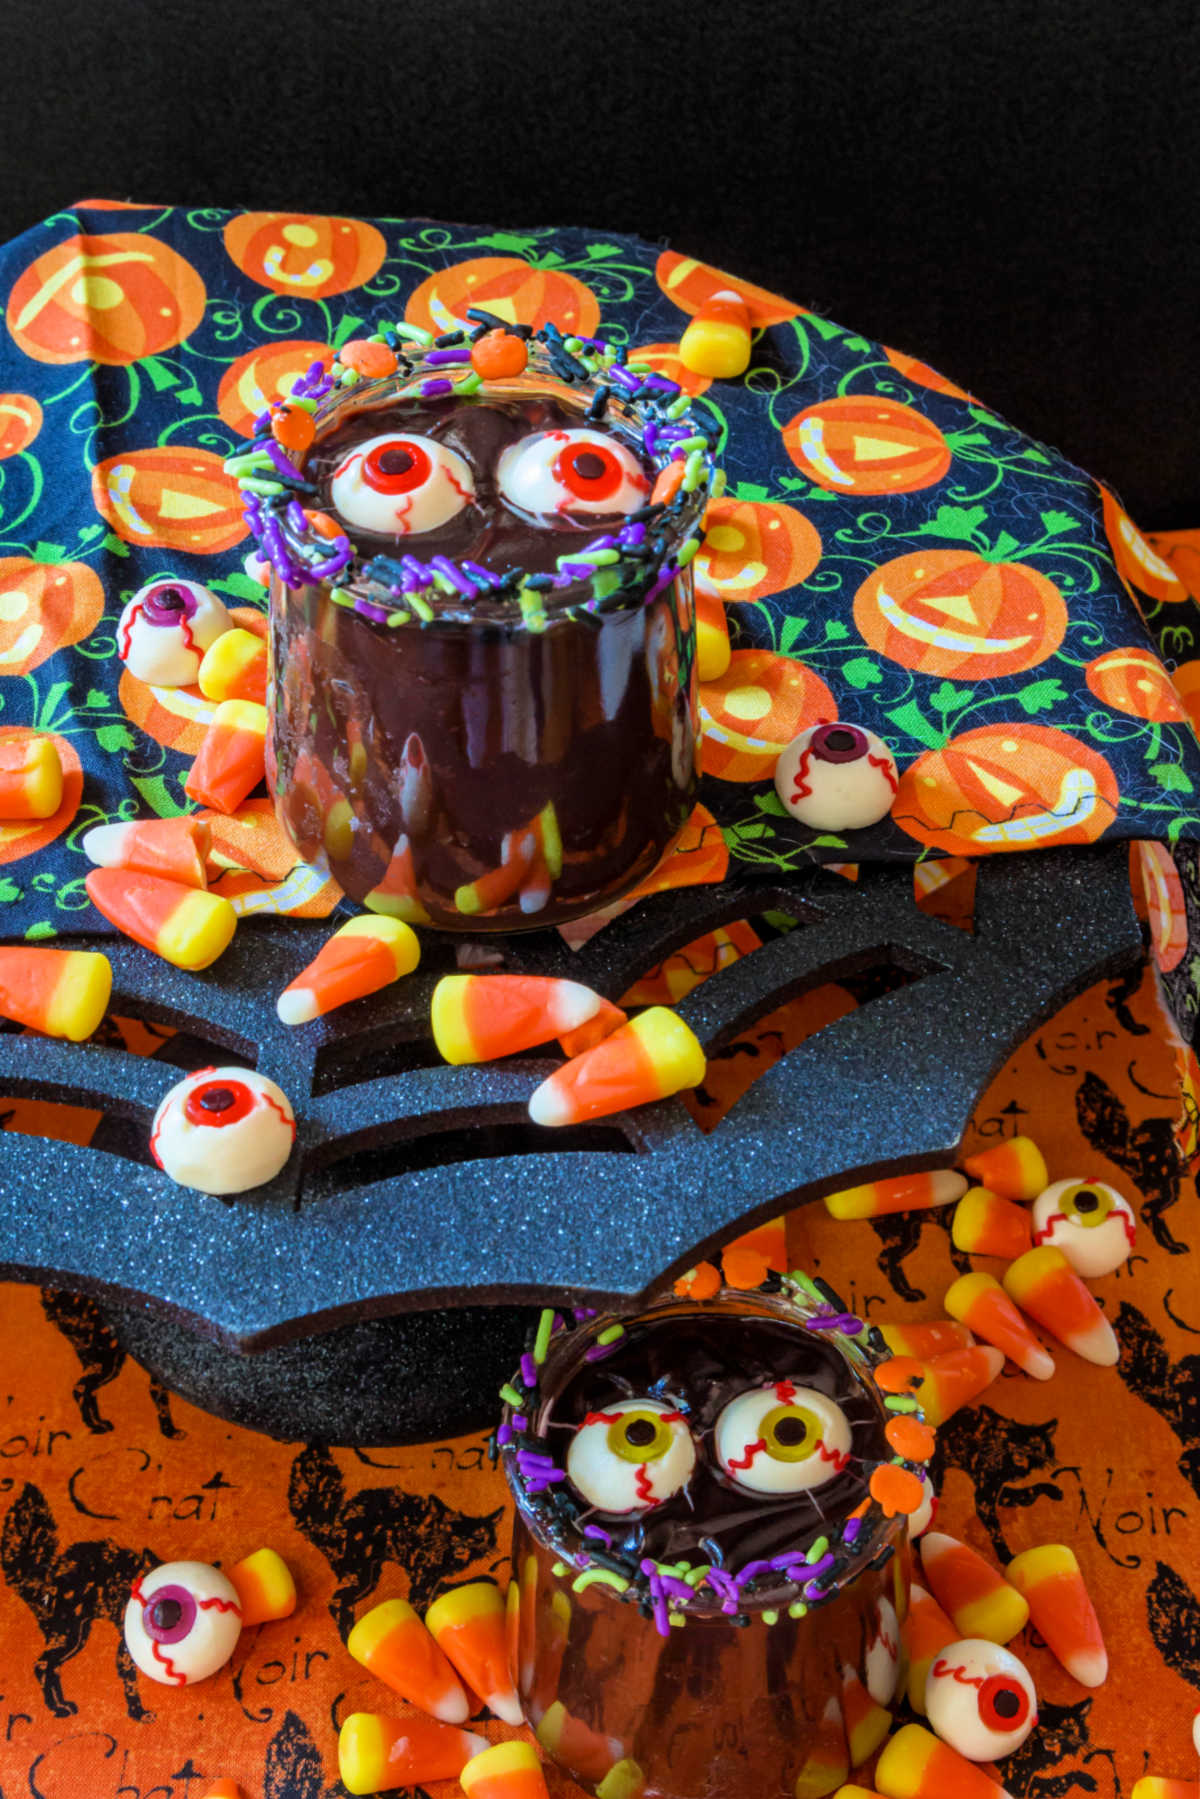 2 jars of easy chocolate pudding decorated for Halloween